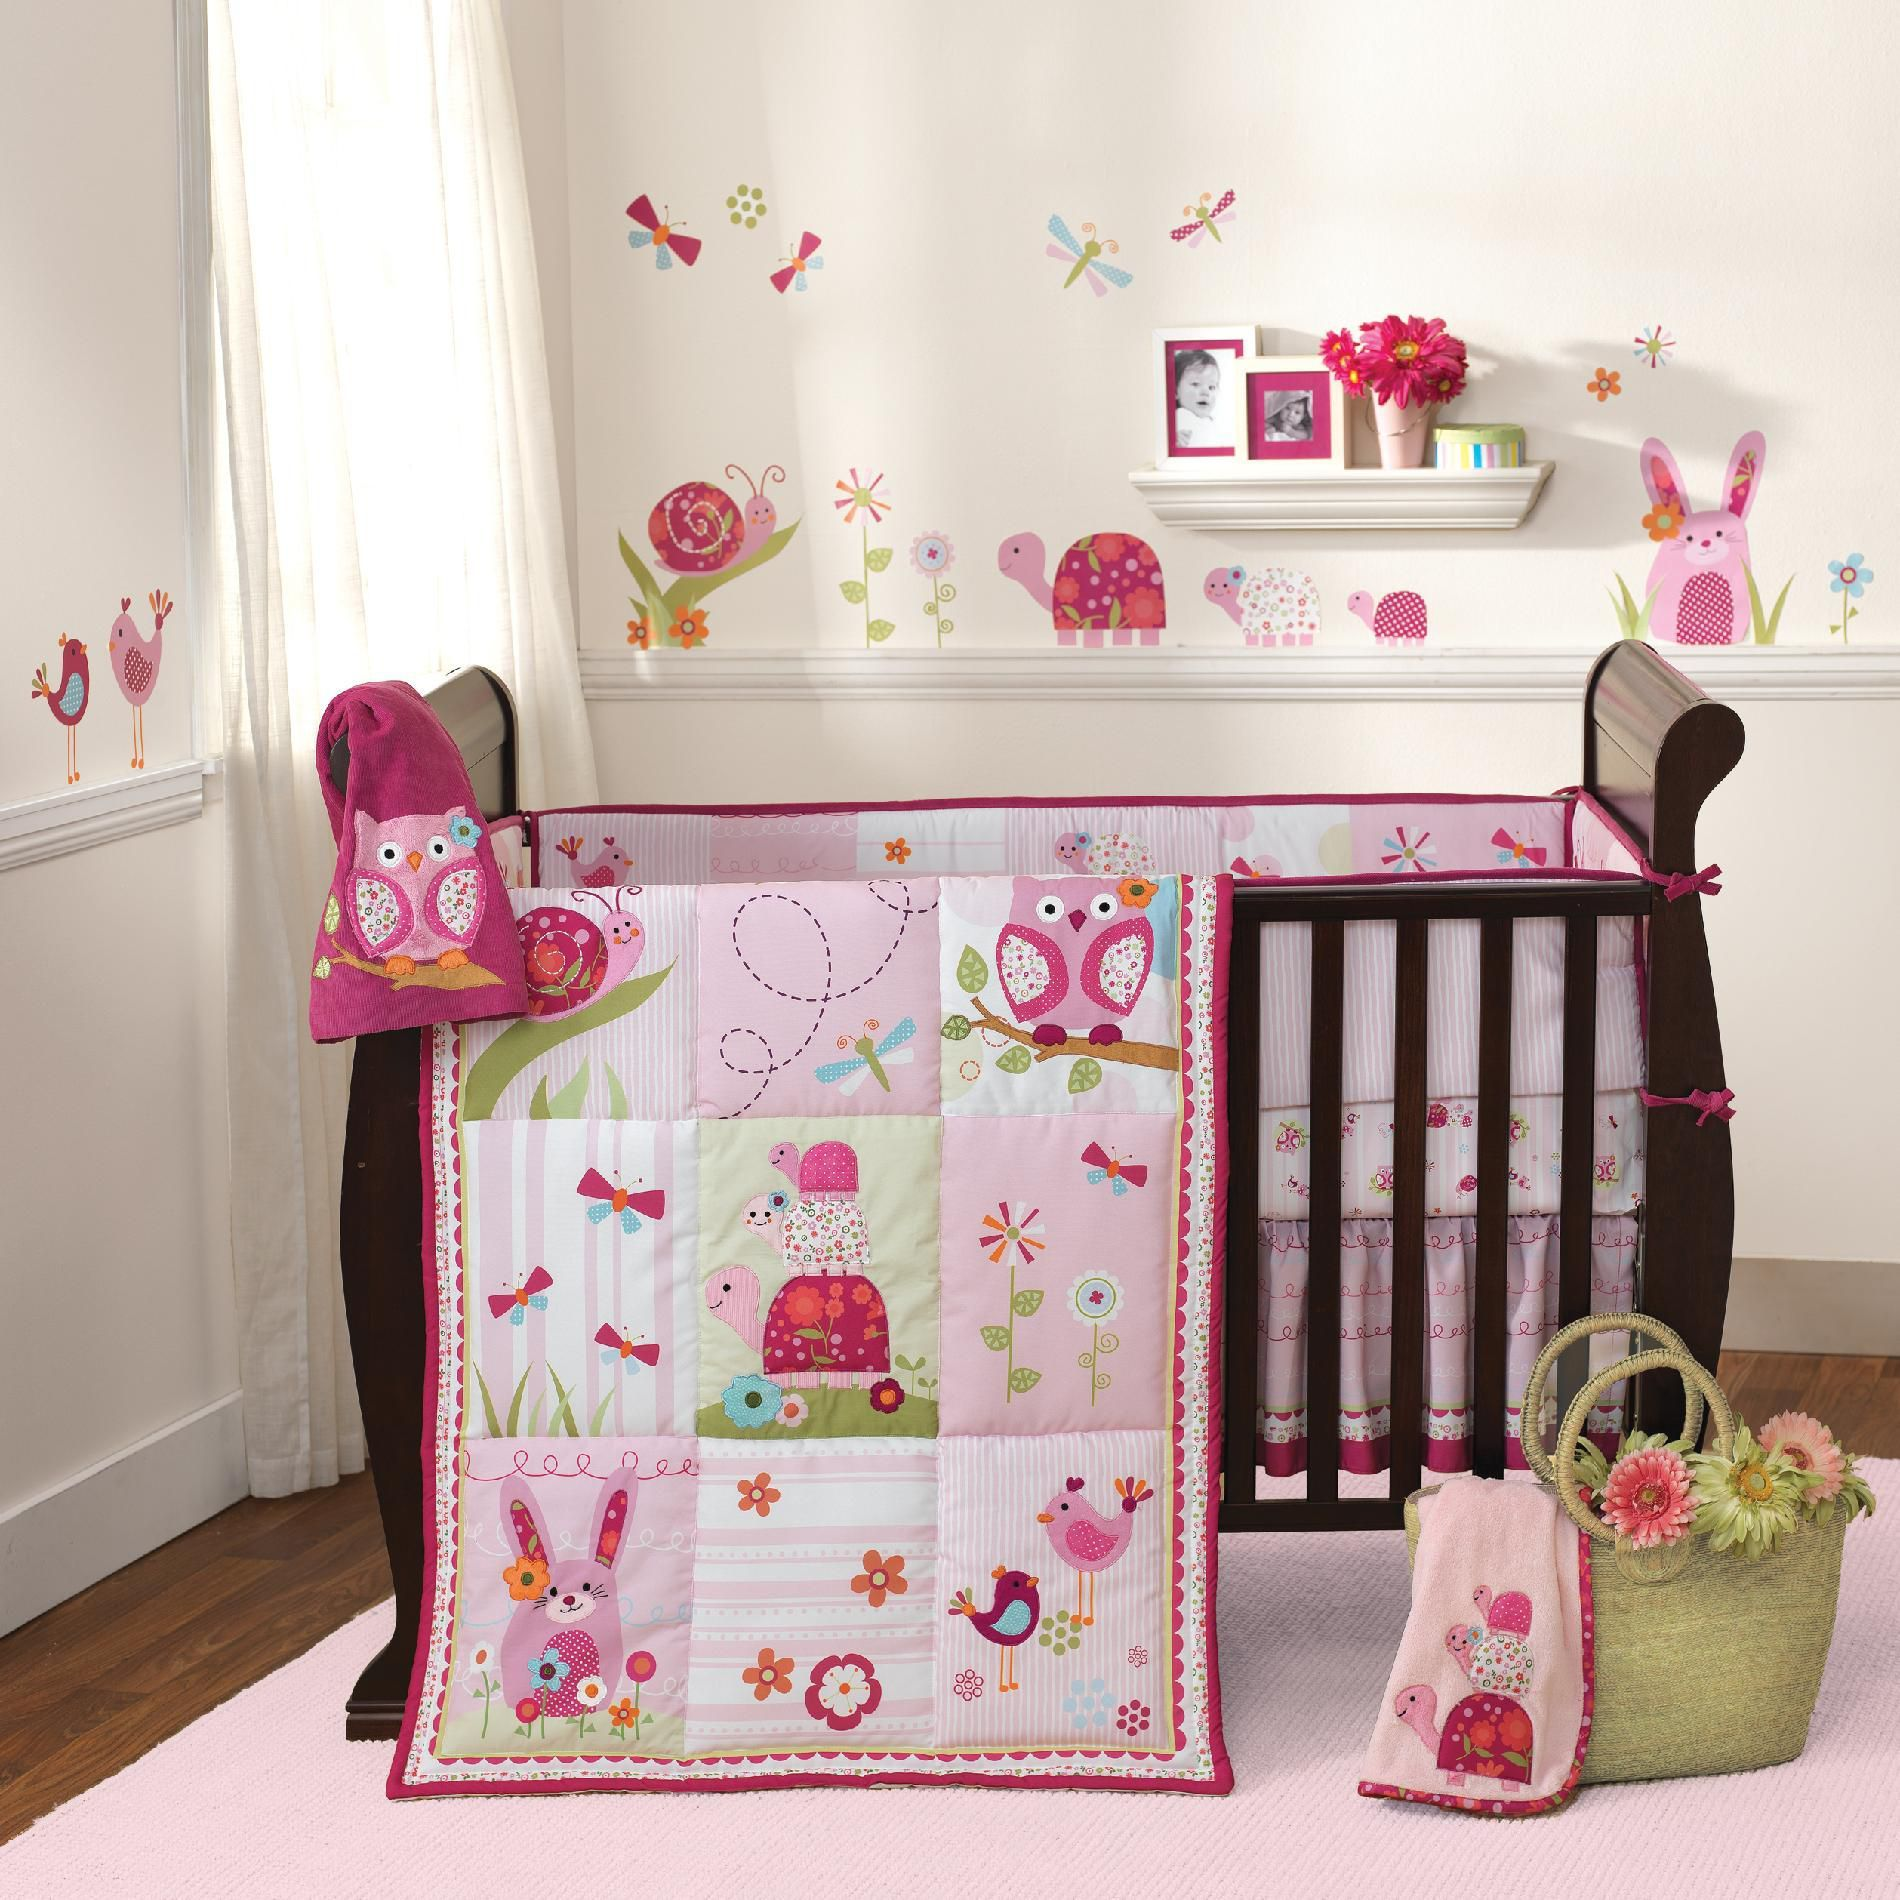 Lambs & Ivy Crib Bedding Garden Babies 3 Piece Set - Baby Sets Collections